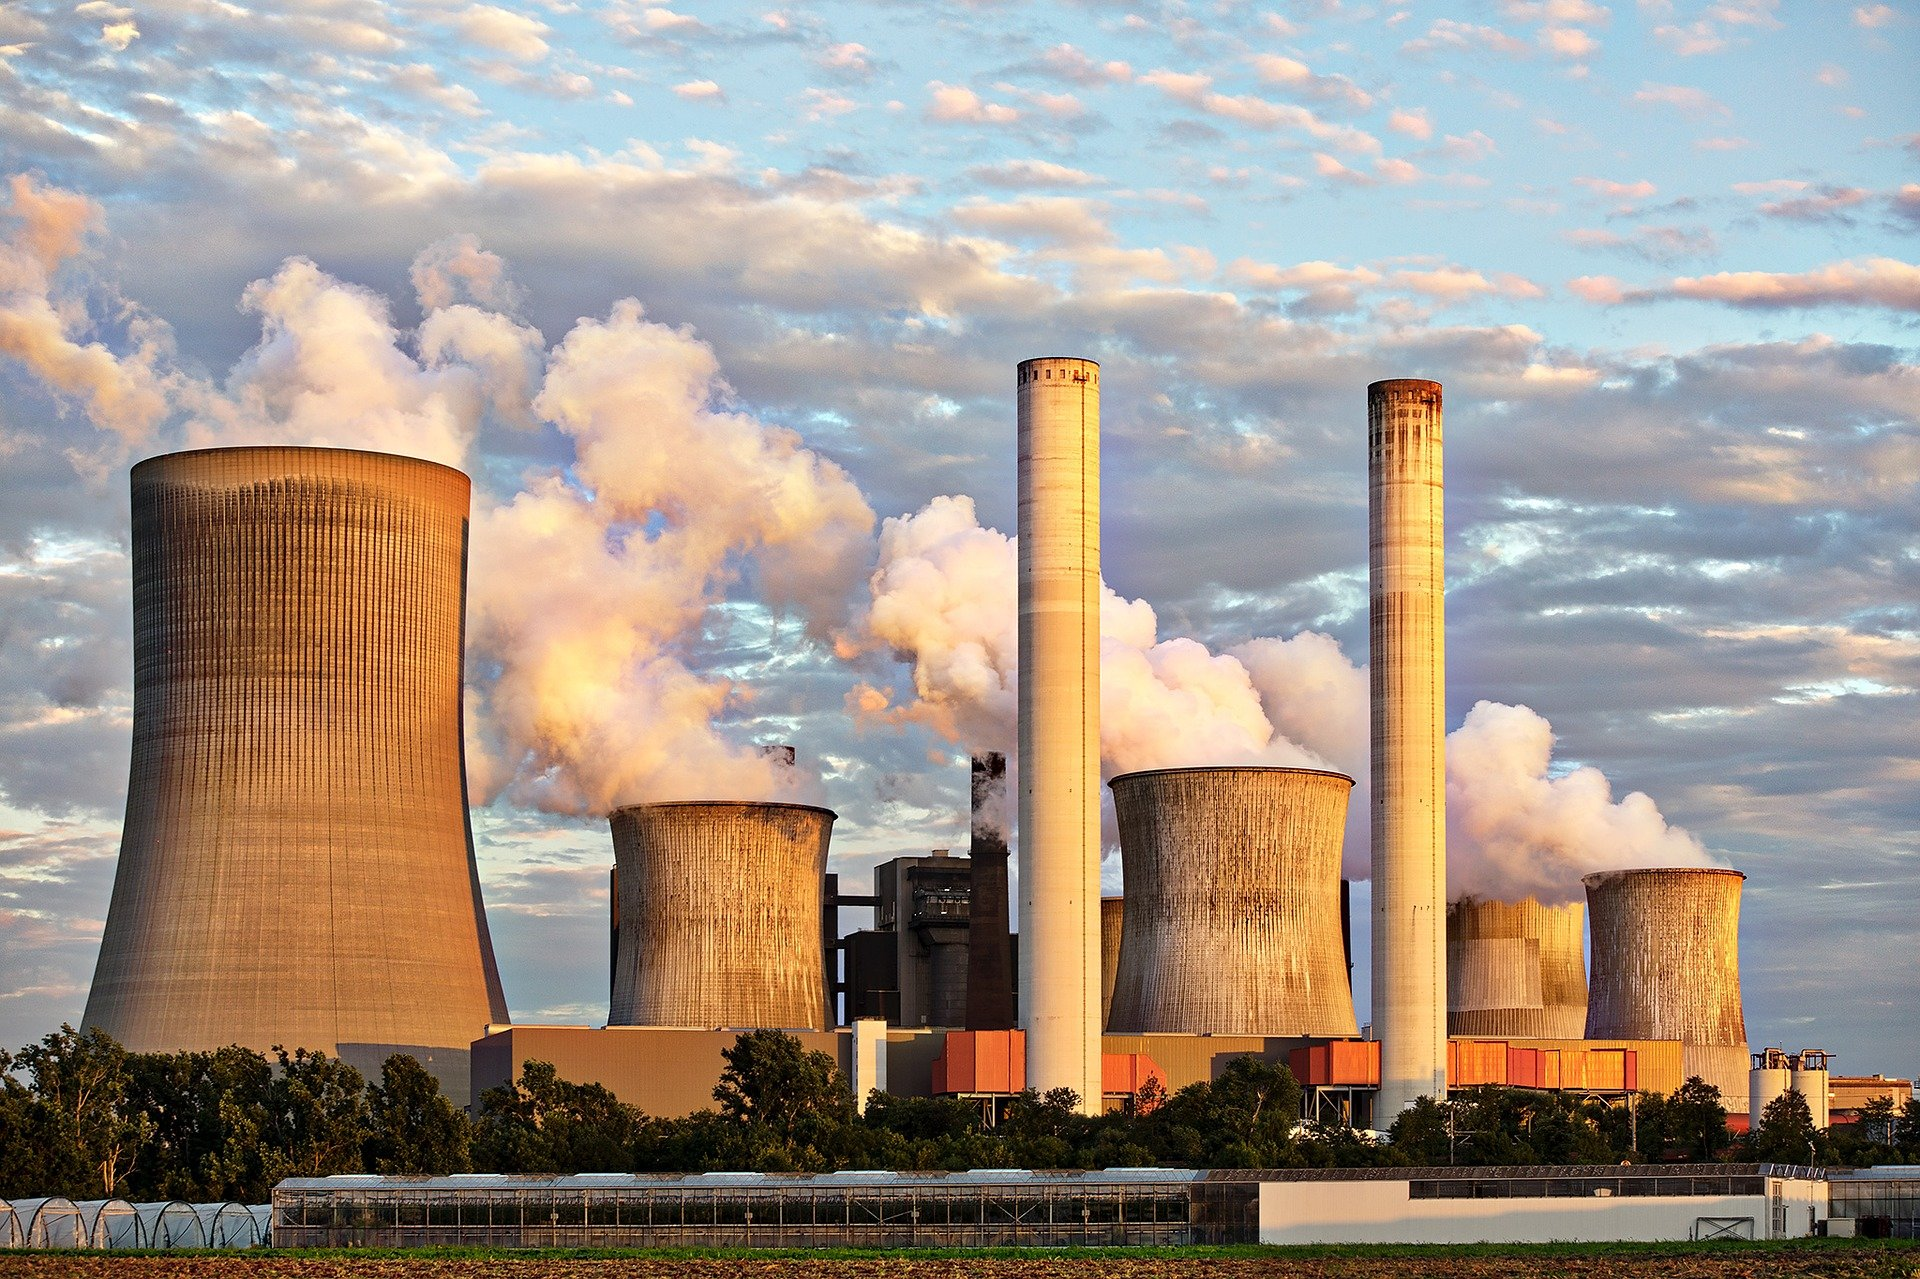 mandatory state policies work best to curb power plant emissions